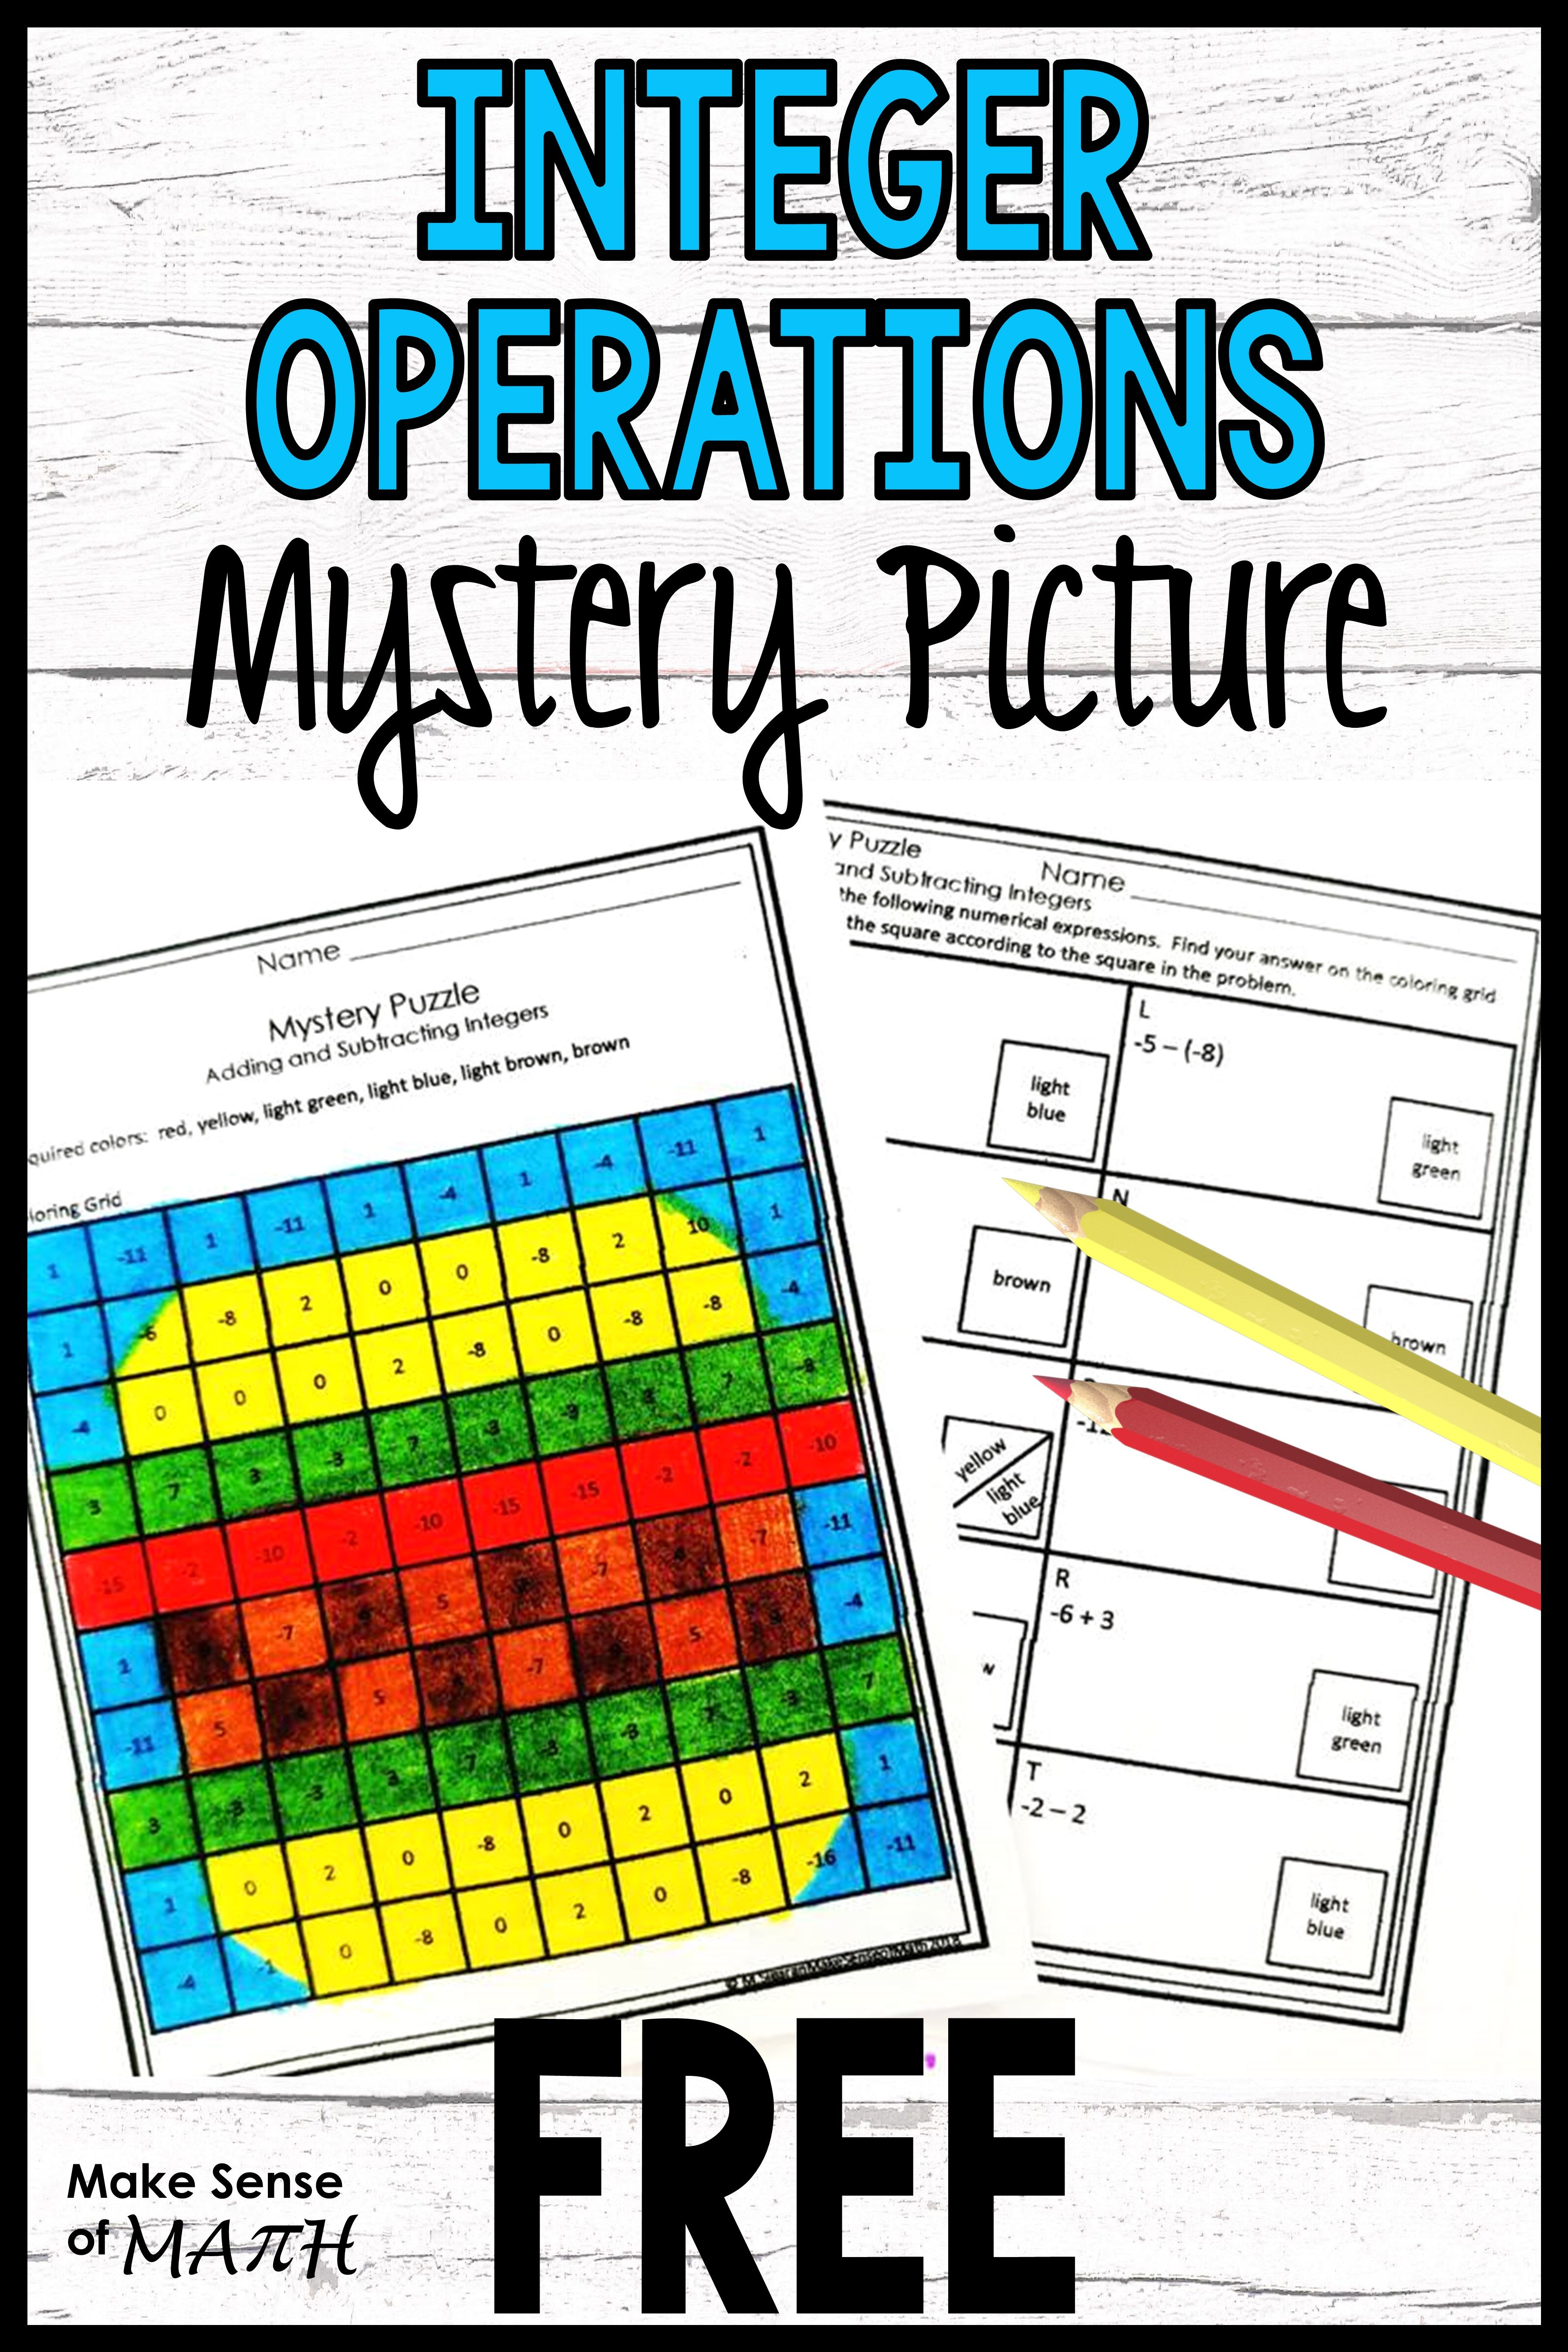 Adding And Subtracting Integers Free Maths Activities Middle School Math Activities Elementary Easy Math Activities Adding and subtracting integers fun